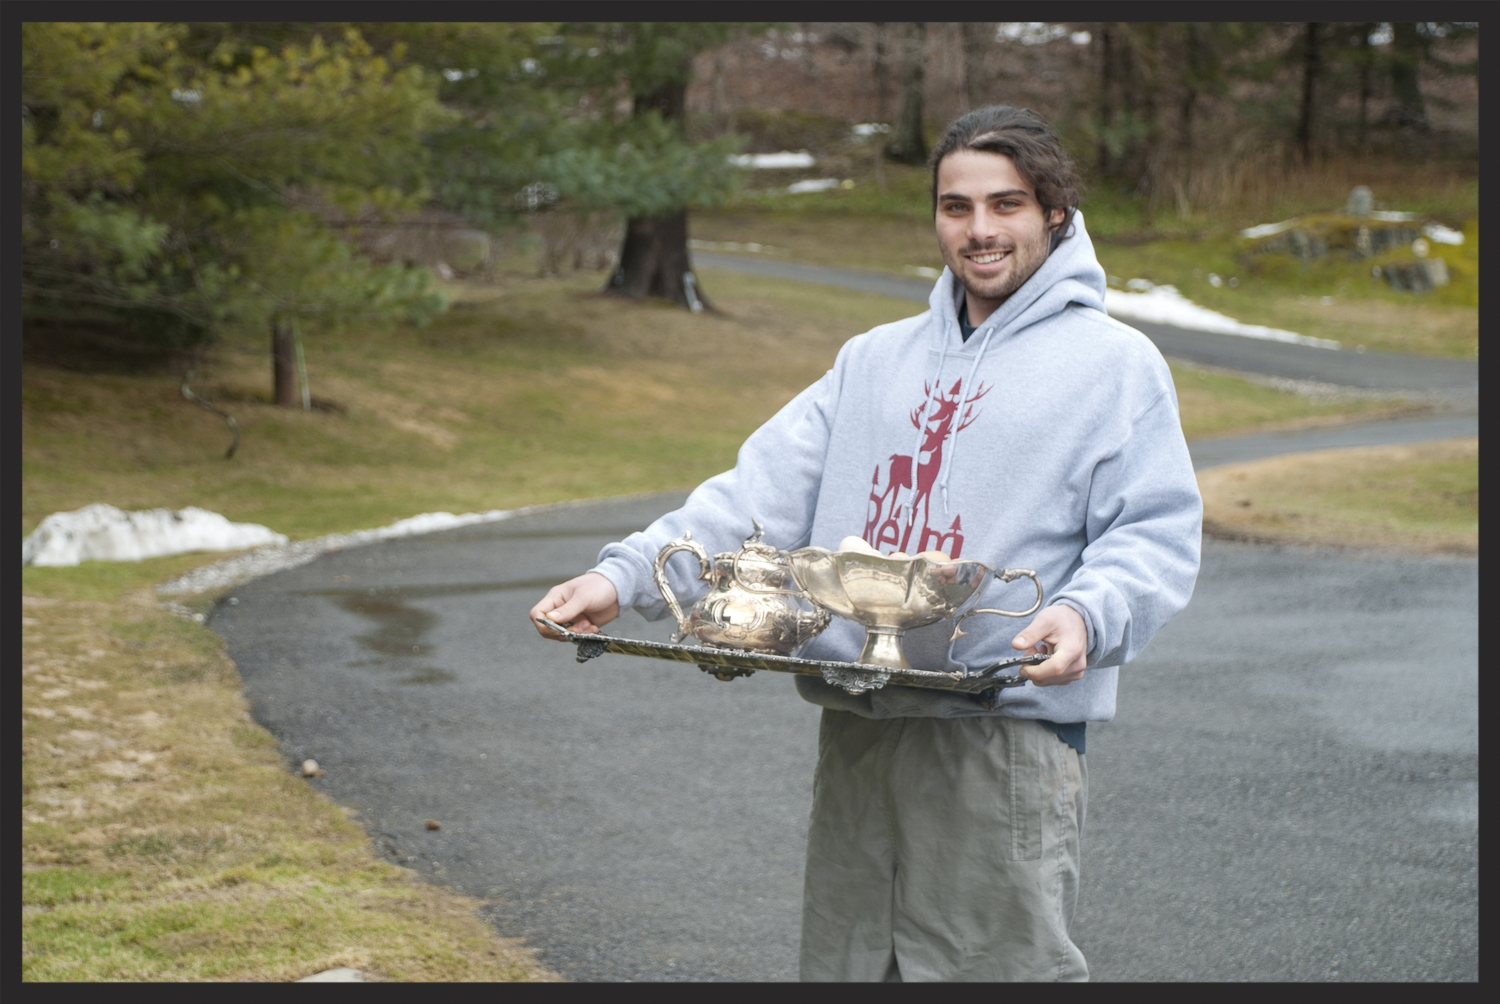 Eli holding a batch of fresh eggs from the coop!